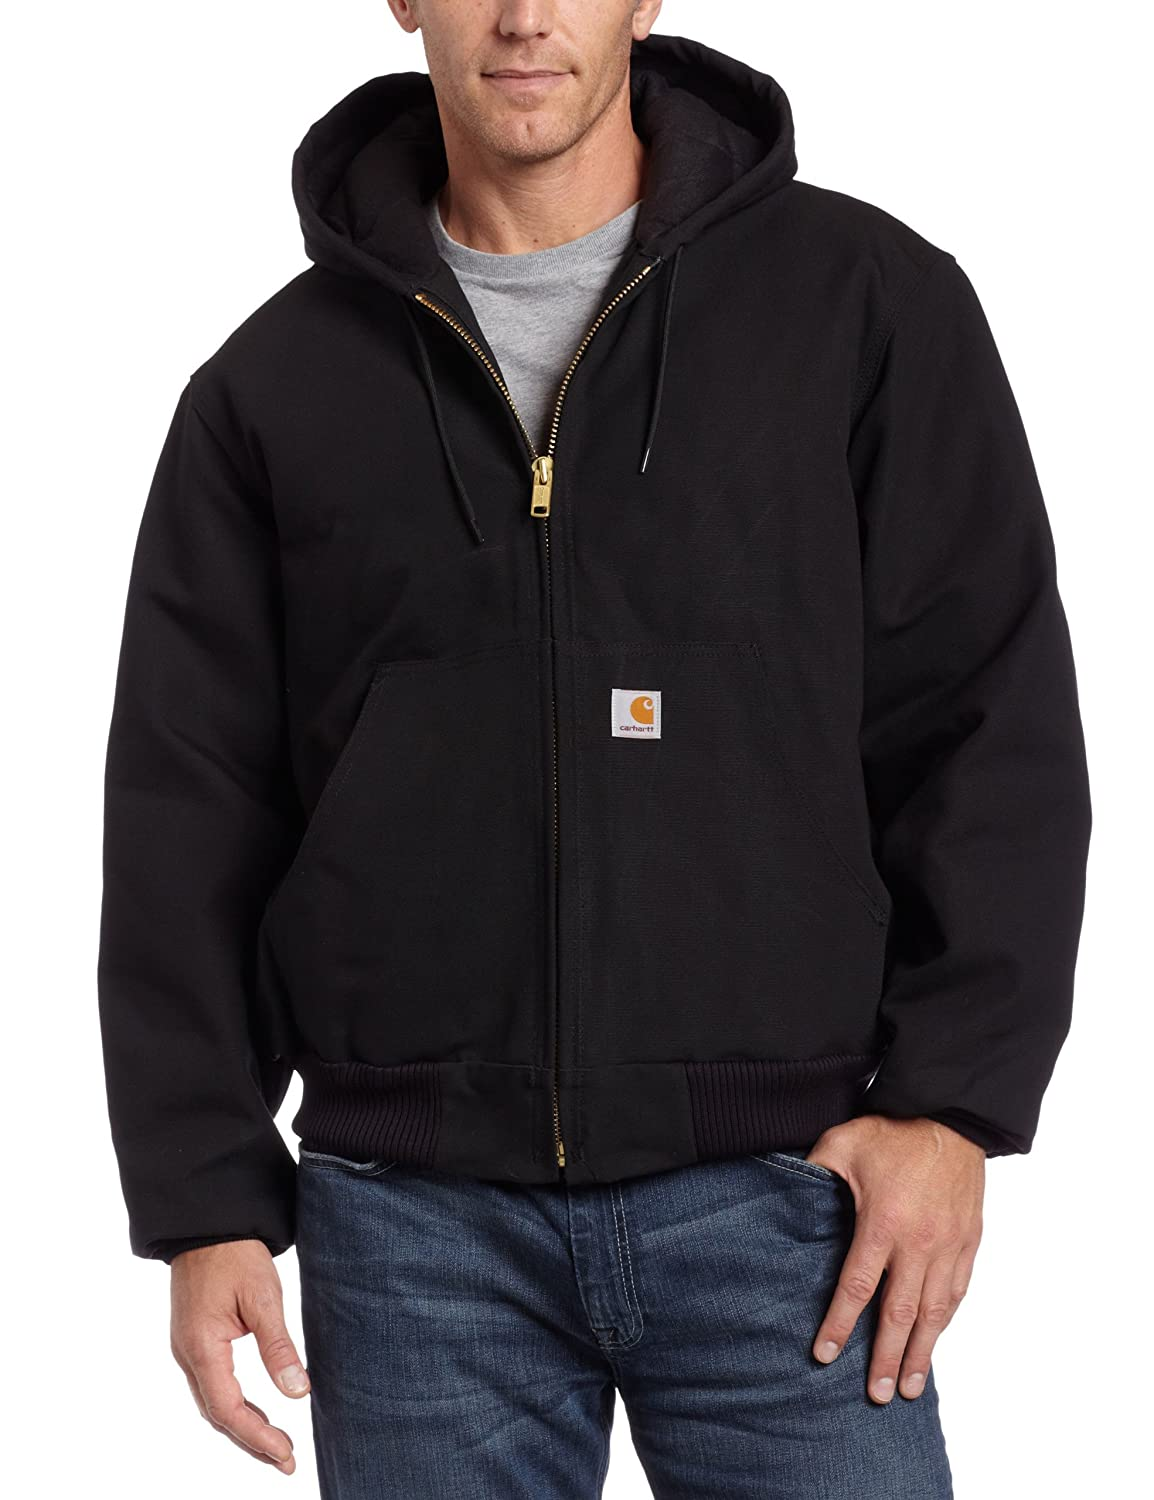 71dc78da3 Amazon.com: Carhartt Men's Quilted Flannel Lined Duck Active Jacket:  Clothing